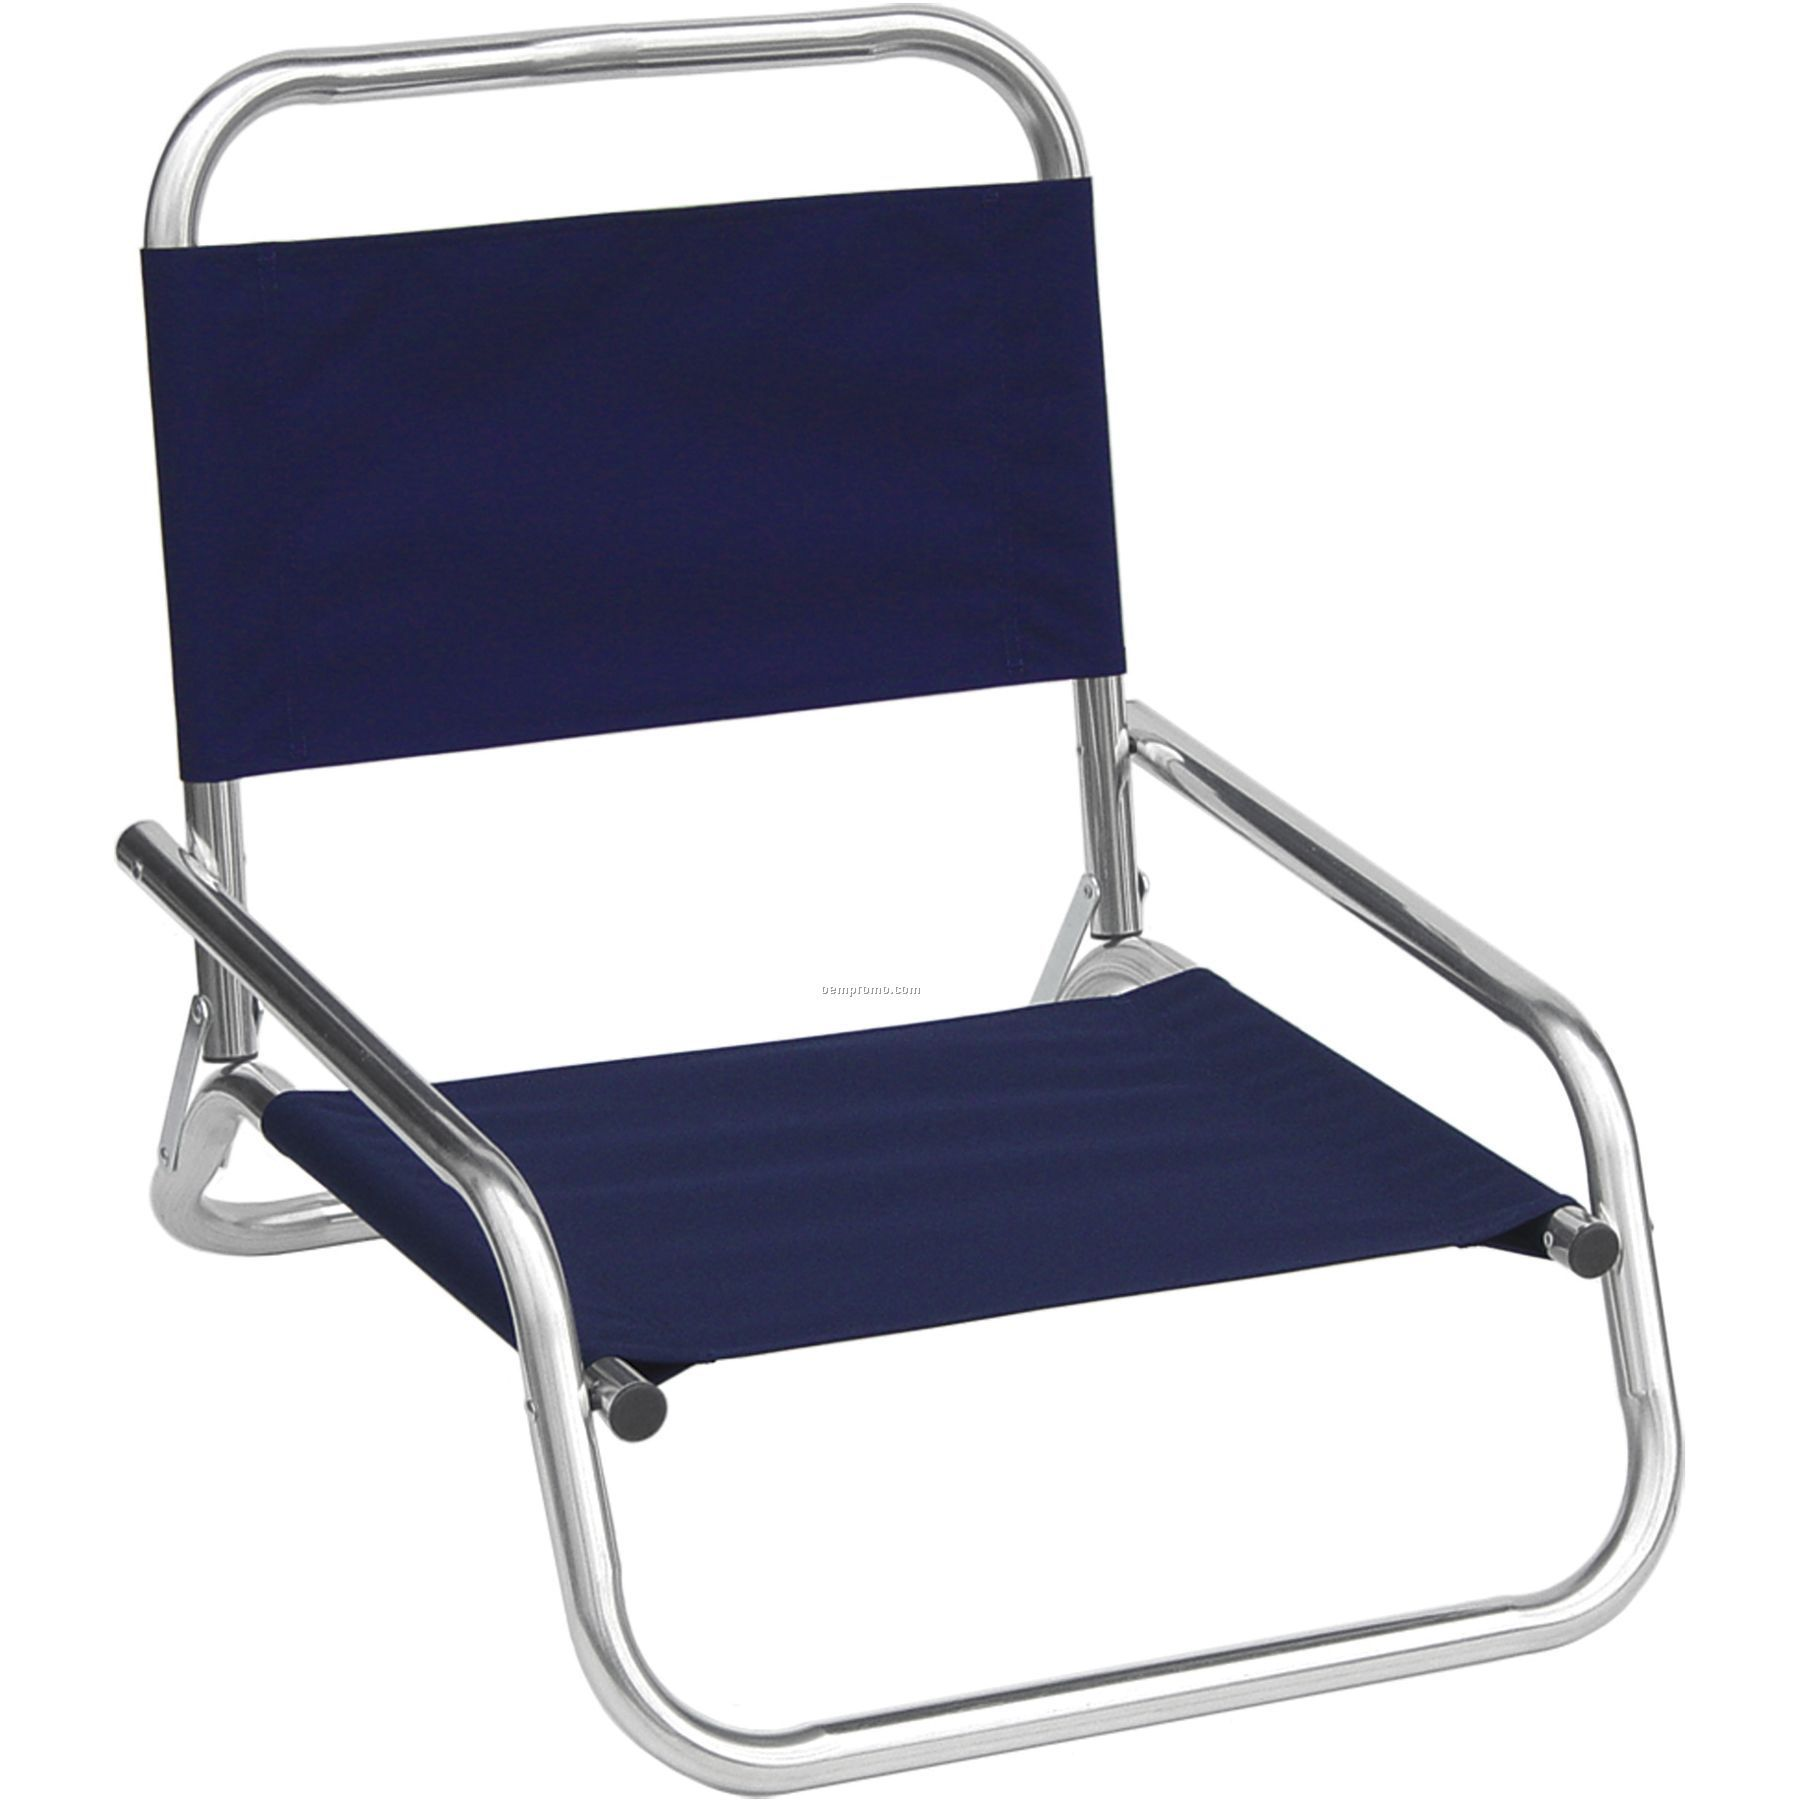 Ideal Low Folding Beach Chair Low Price Folding Beach Chair